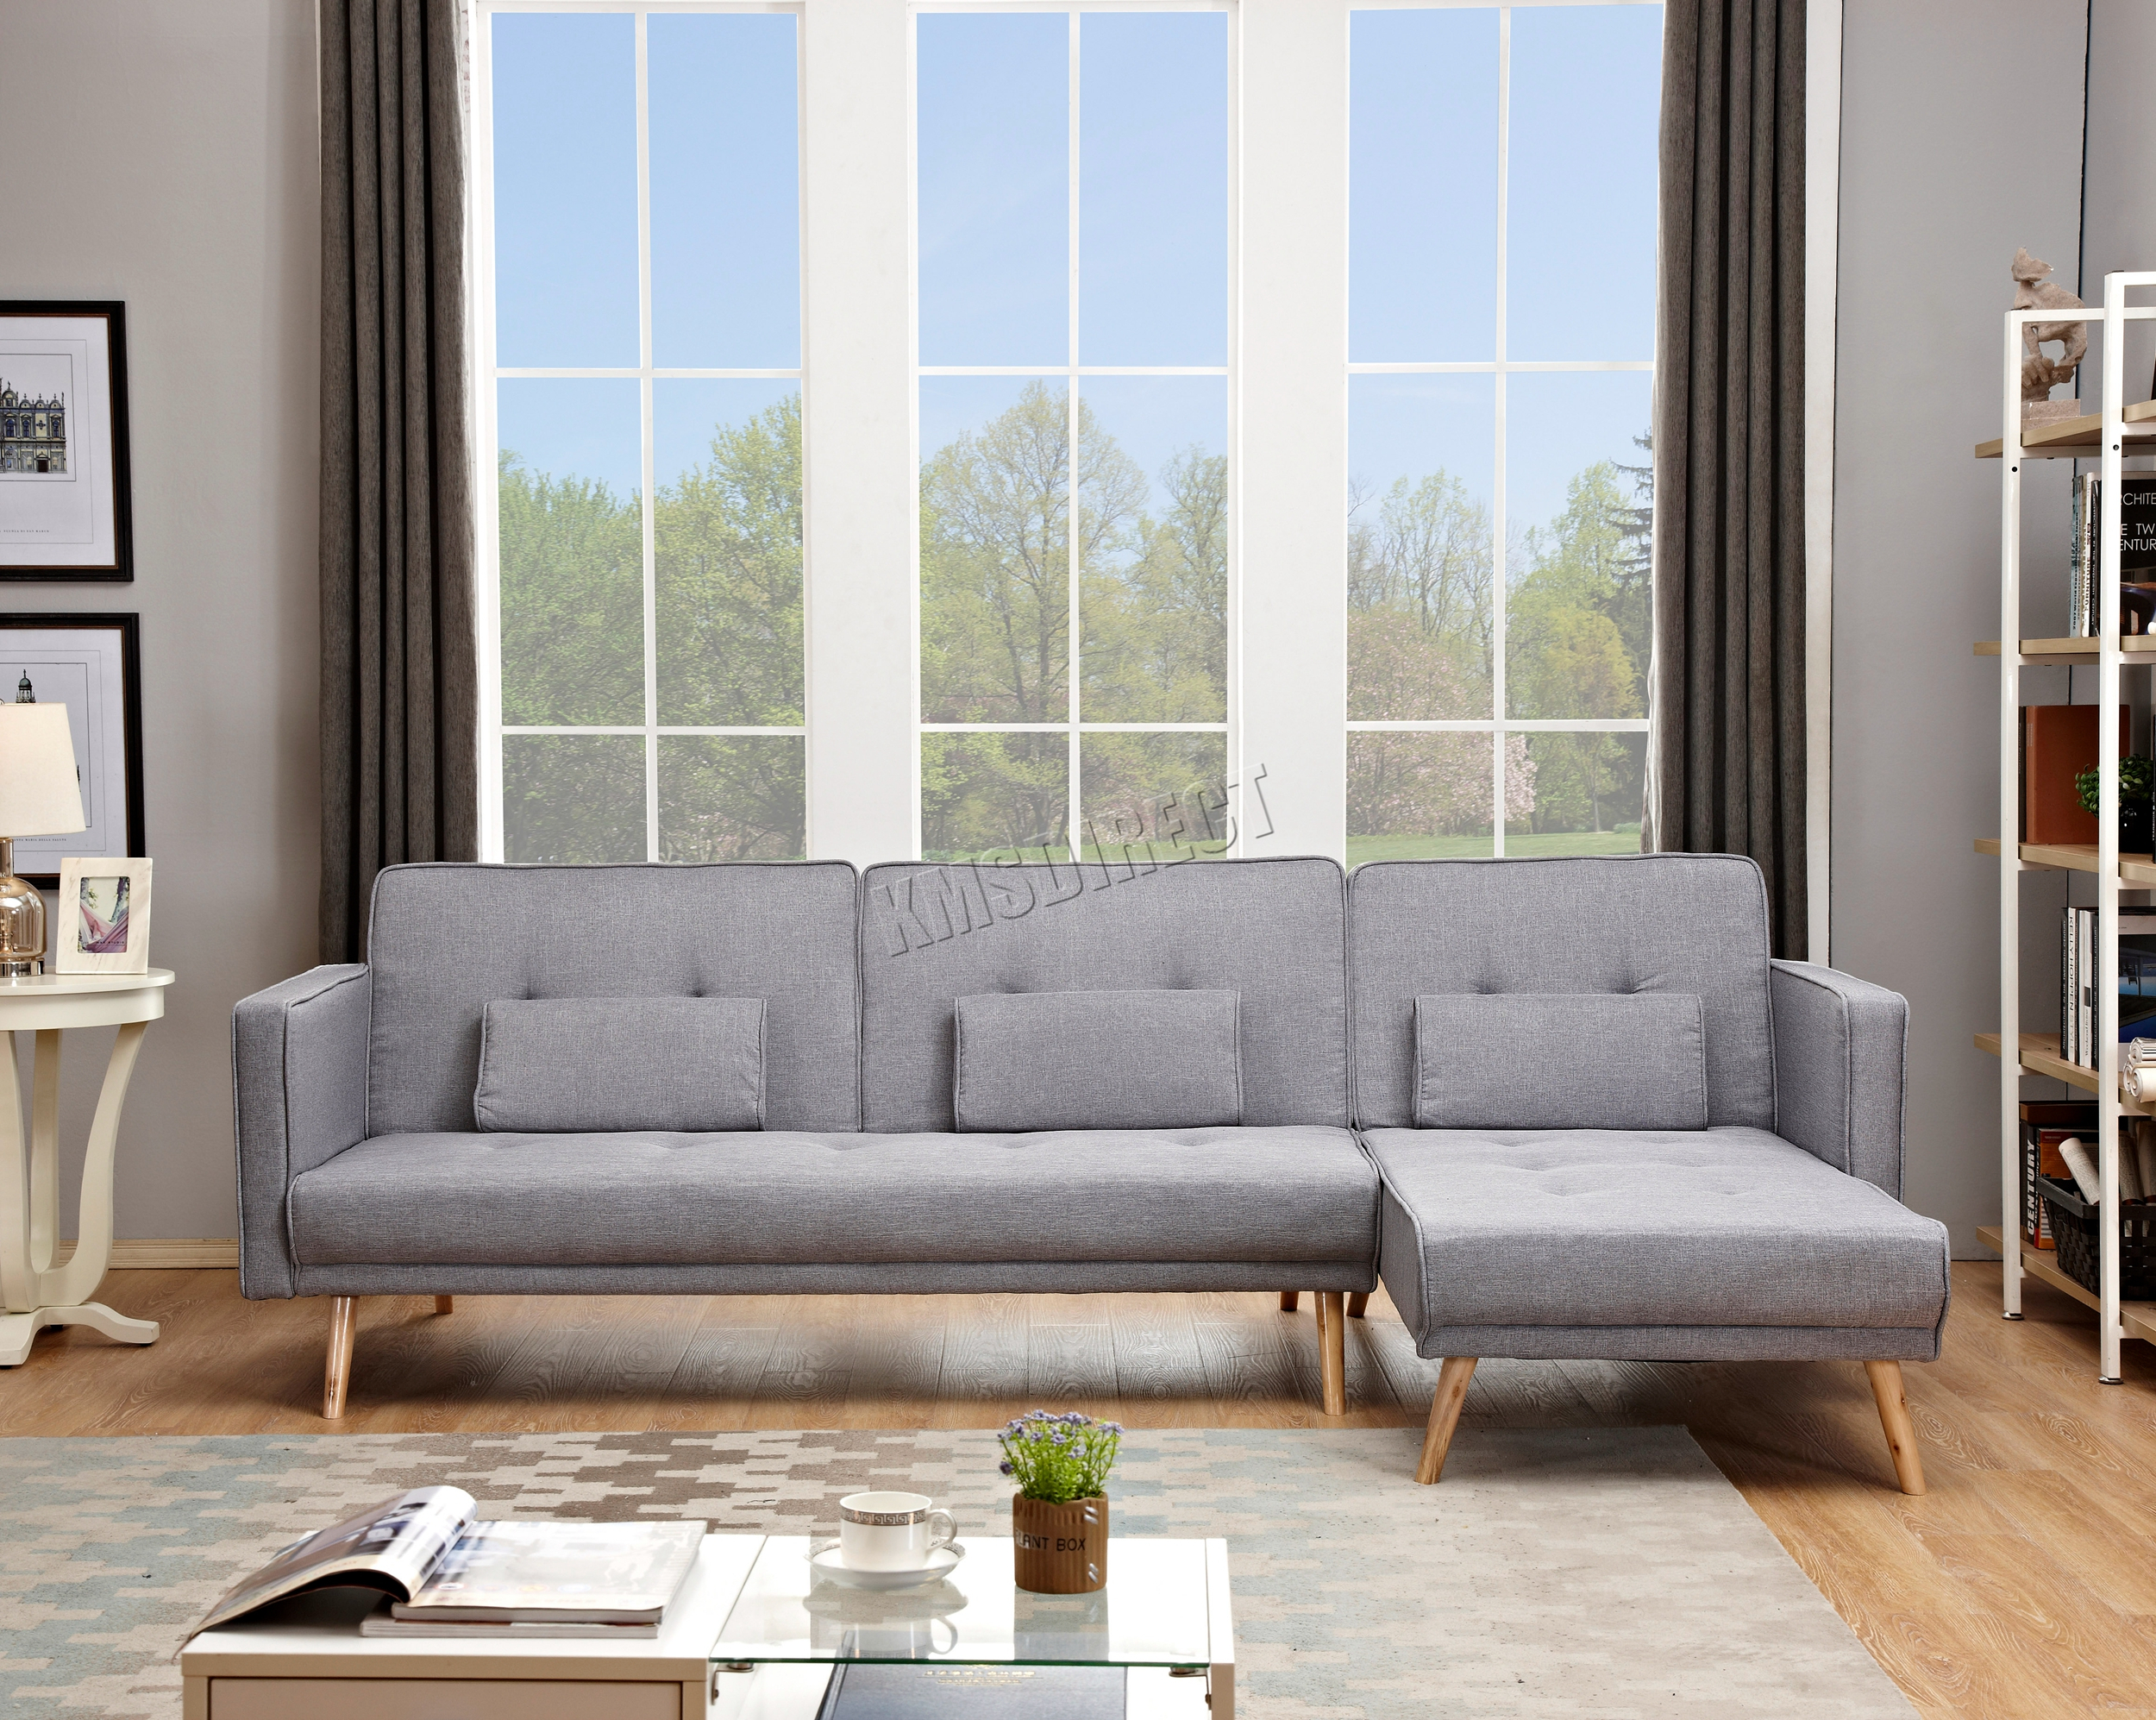 Westwood Luxury L Shape Fabric Sofa Bed Corner Couch 3/4 In Fancy Sofas (View 6 of 15)